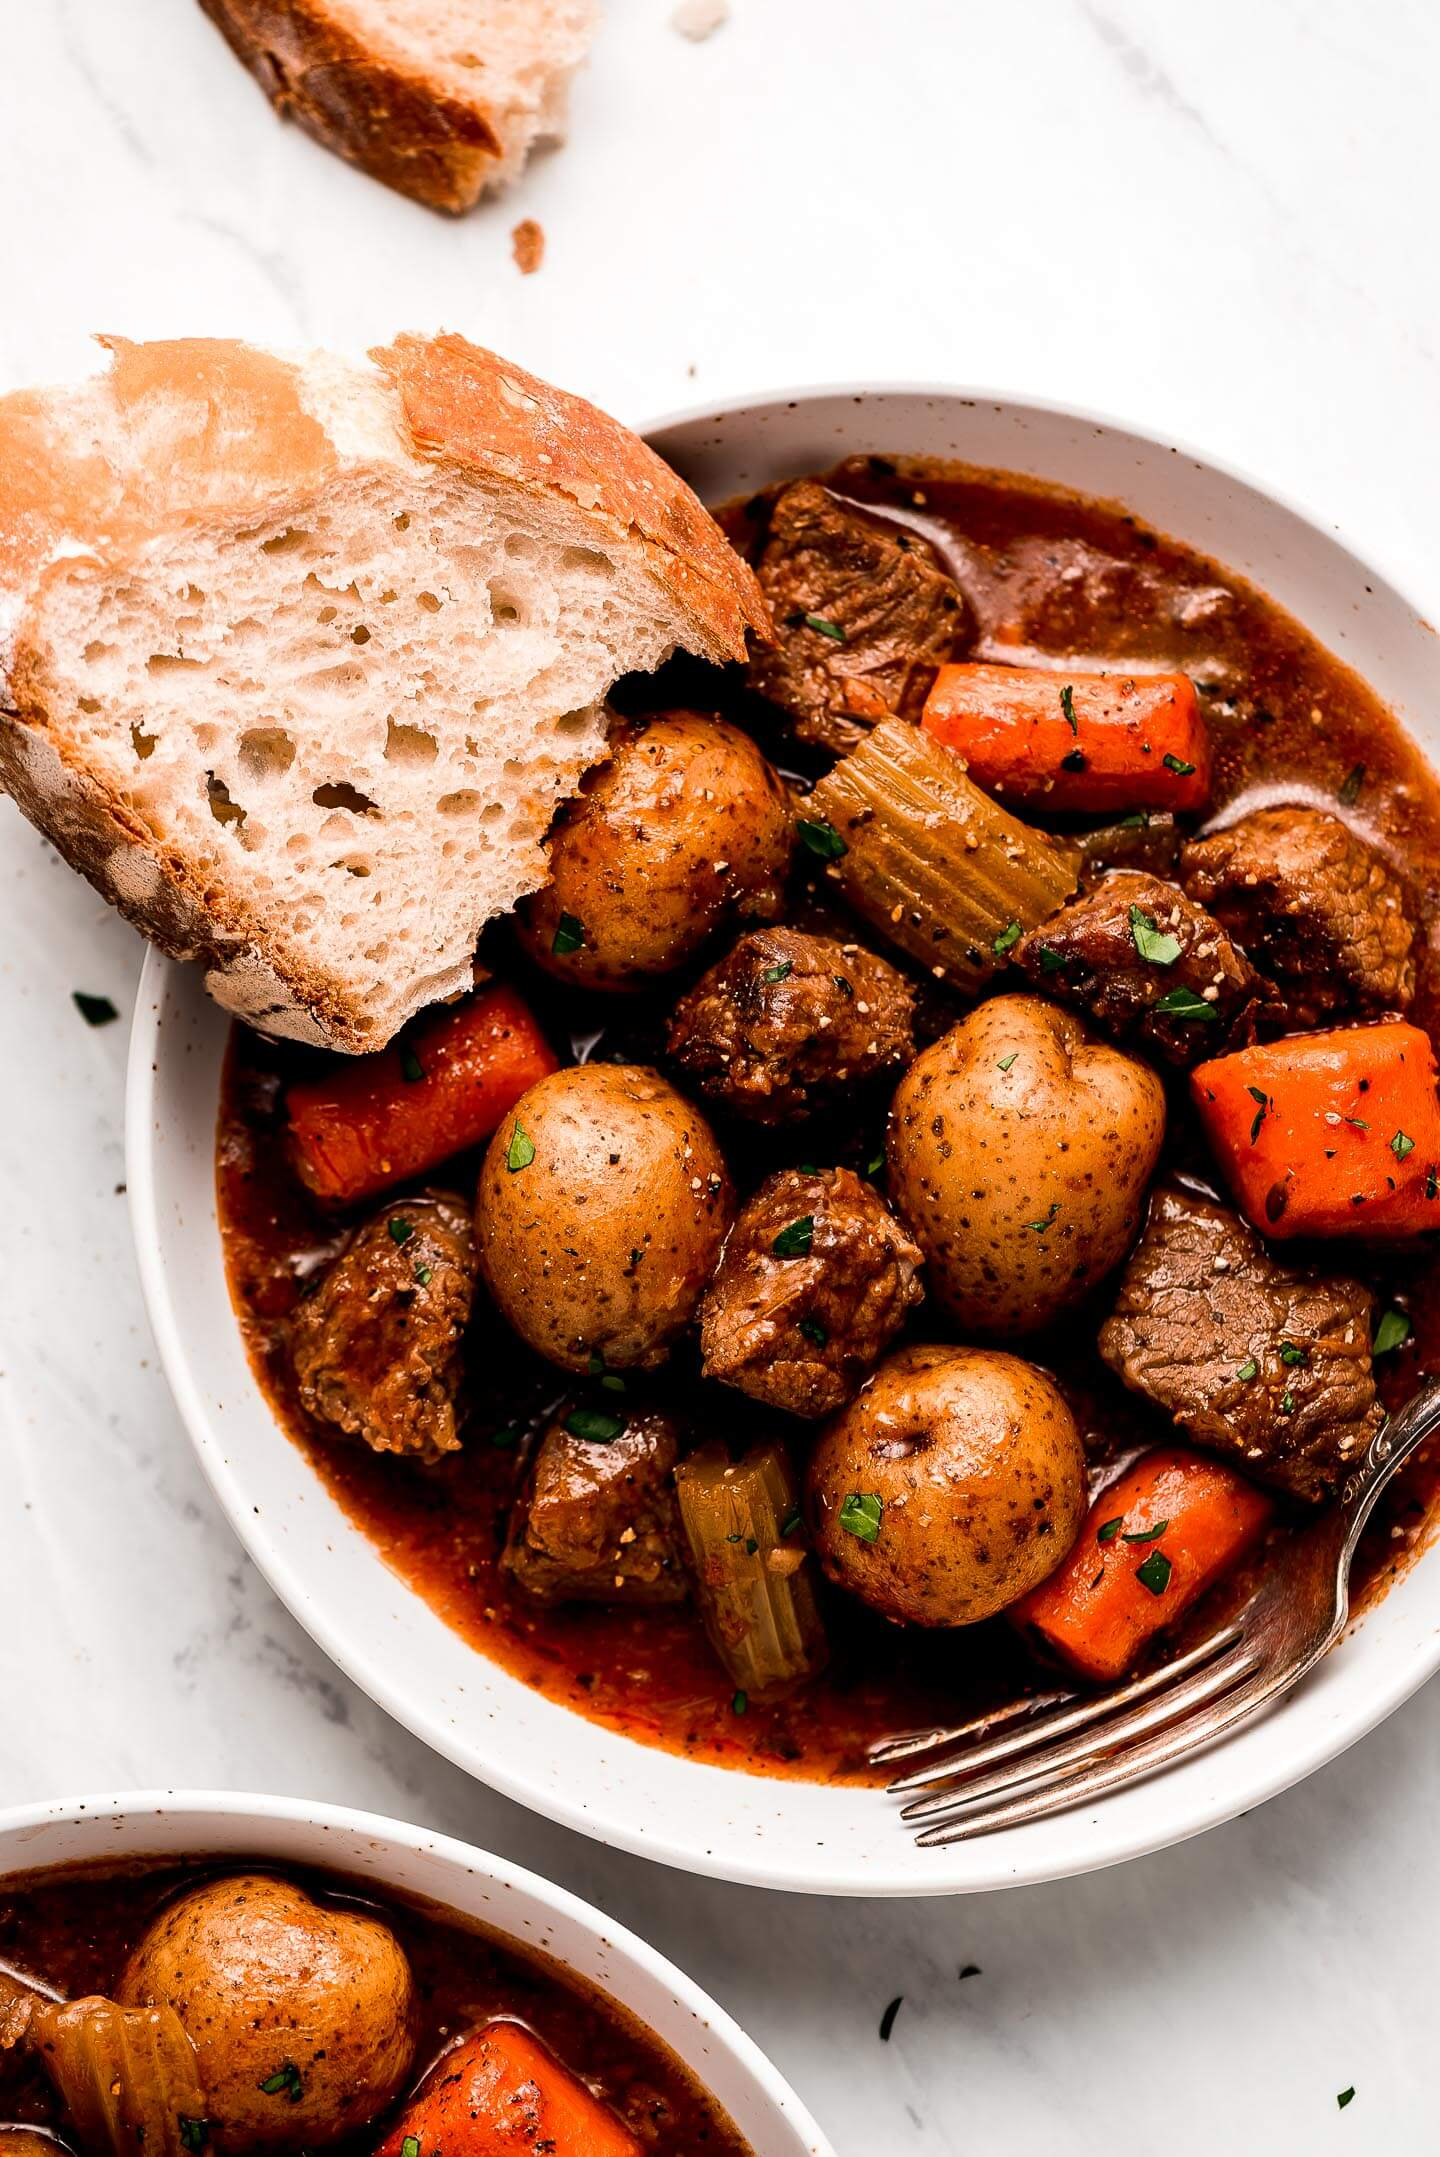 A bowl of Instant Pot Beef Stew with a slice of artisan bread on the side.